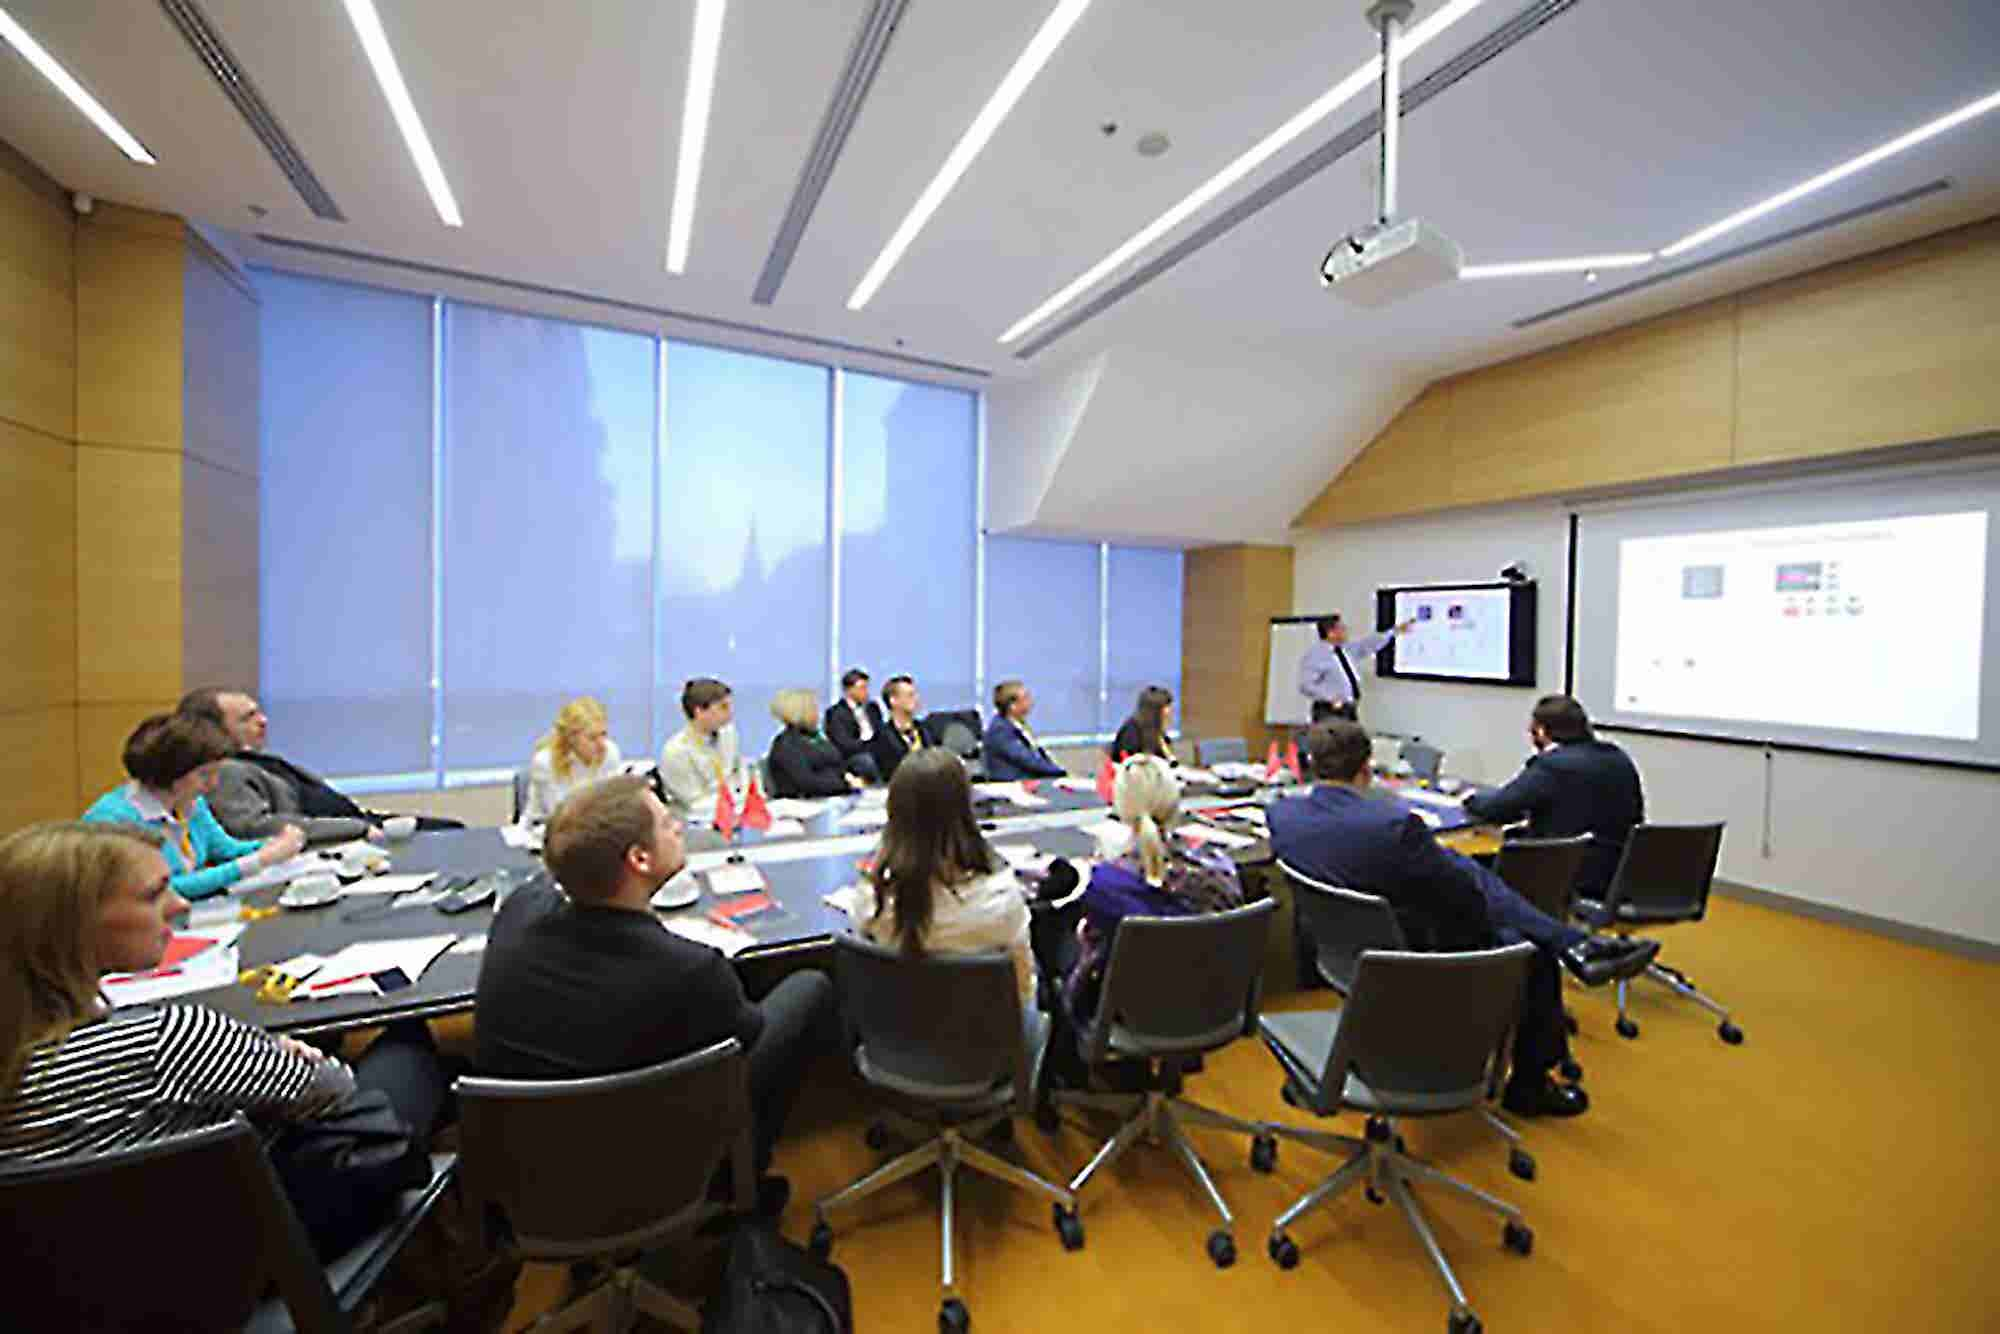 In Your Next Board Presentation, Here's What to Lead With: People